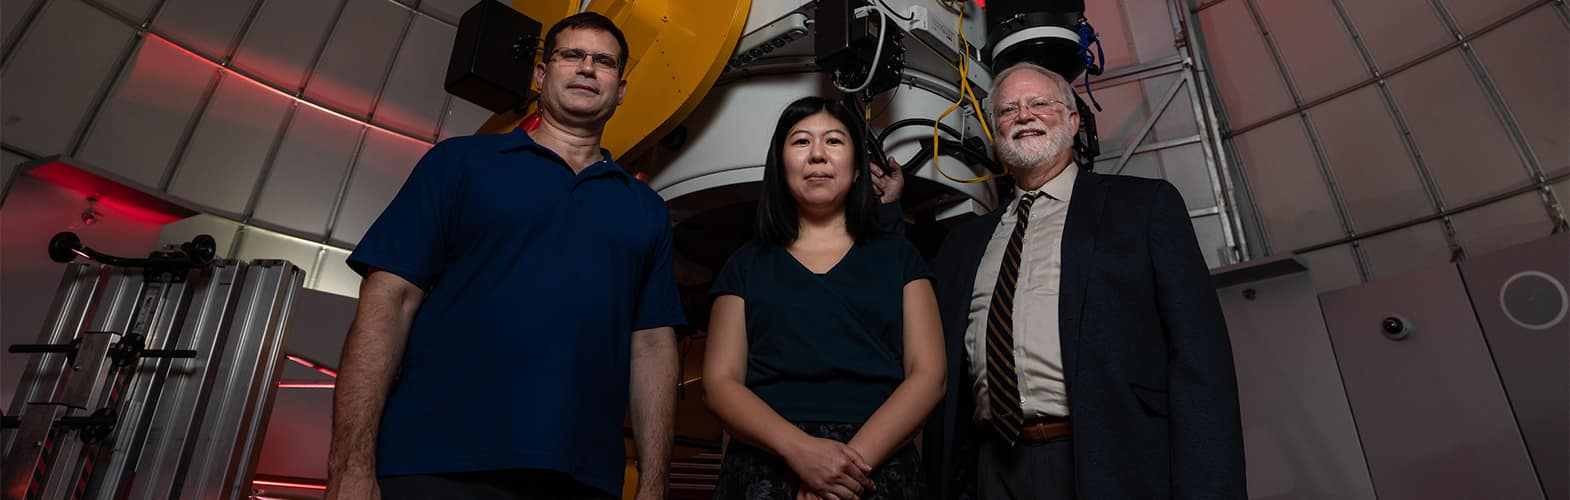 Embry-Riddle professors Dr. Terry Oswalt, Dr. Tomomi Otoni, and Florida Gulf Coast University Dr. Derek Buzasi.